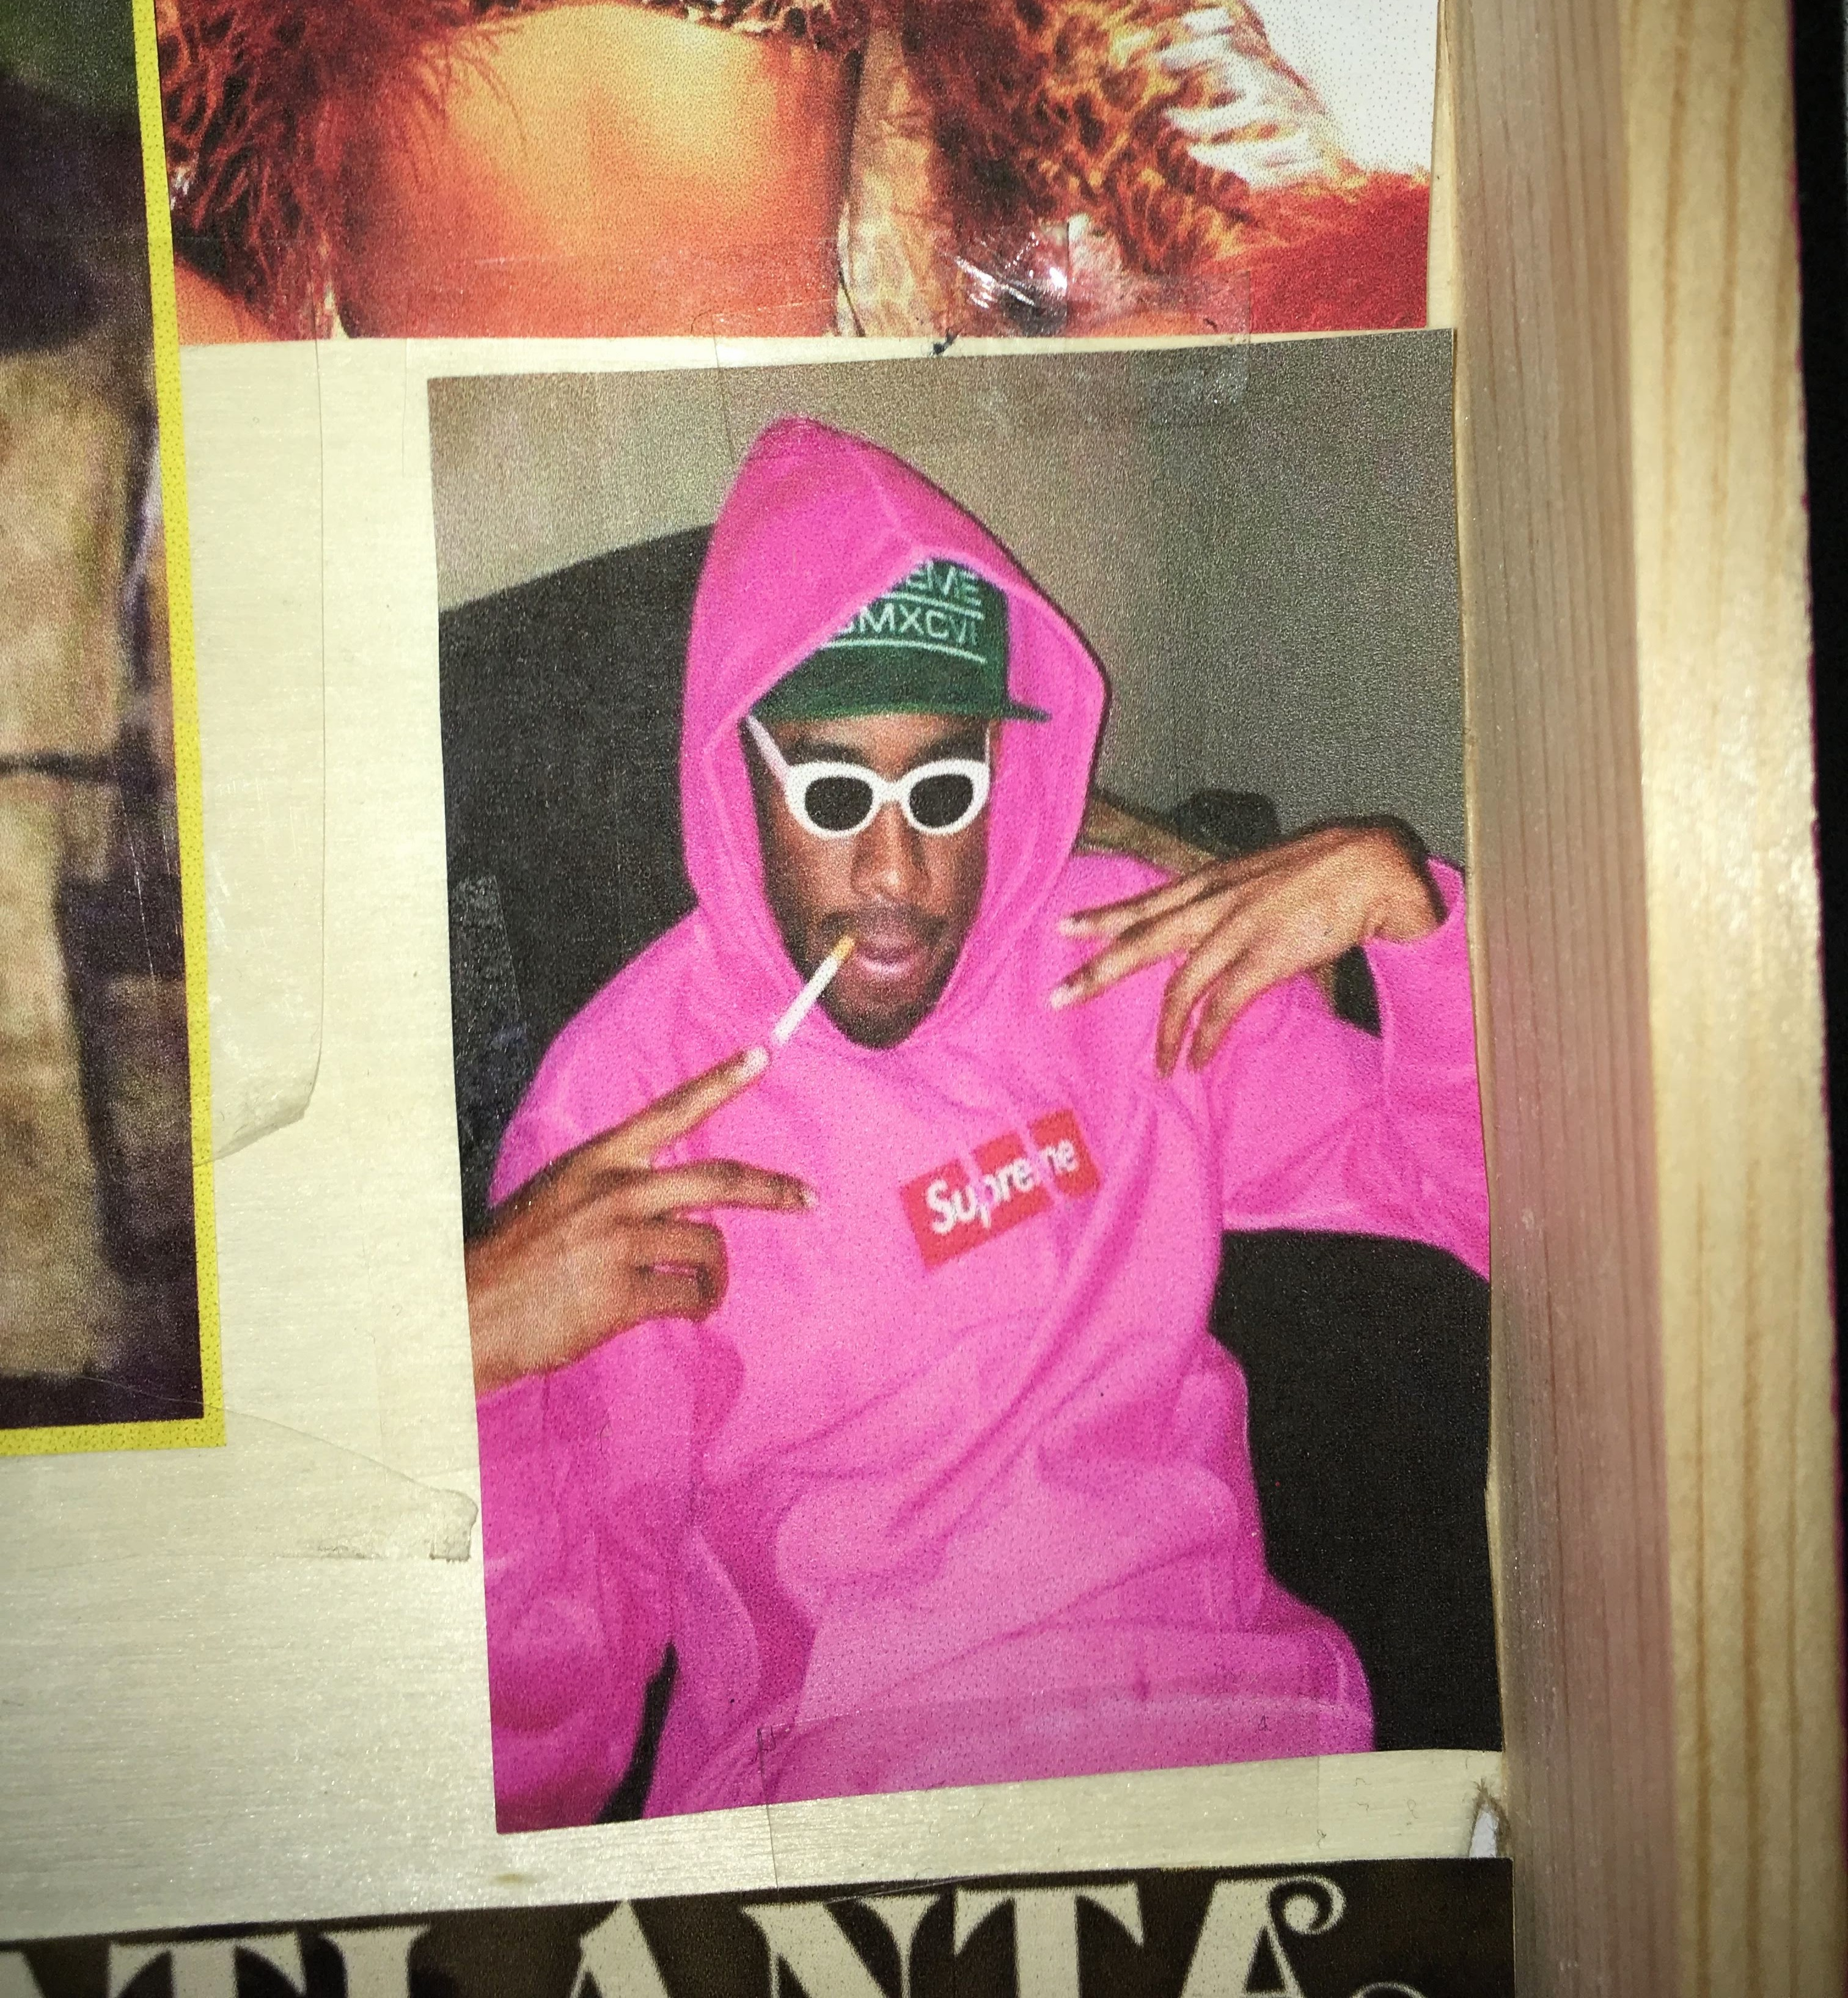 This image is a picture of Tyler, the Creator from a 2013 interview with 'Noisey'. I placed this picture in the box because he is one of the main inspirations for my art. I placed this image under the '2010s fashion' in my teaching module. However, he's a current figure in hip-hop who has branched out into multiple fields of media, such as fashion.